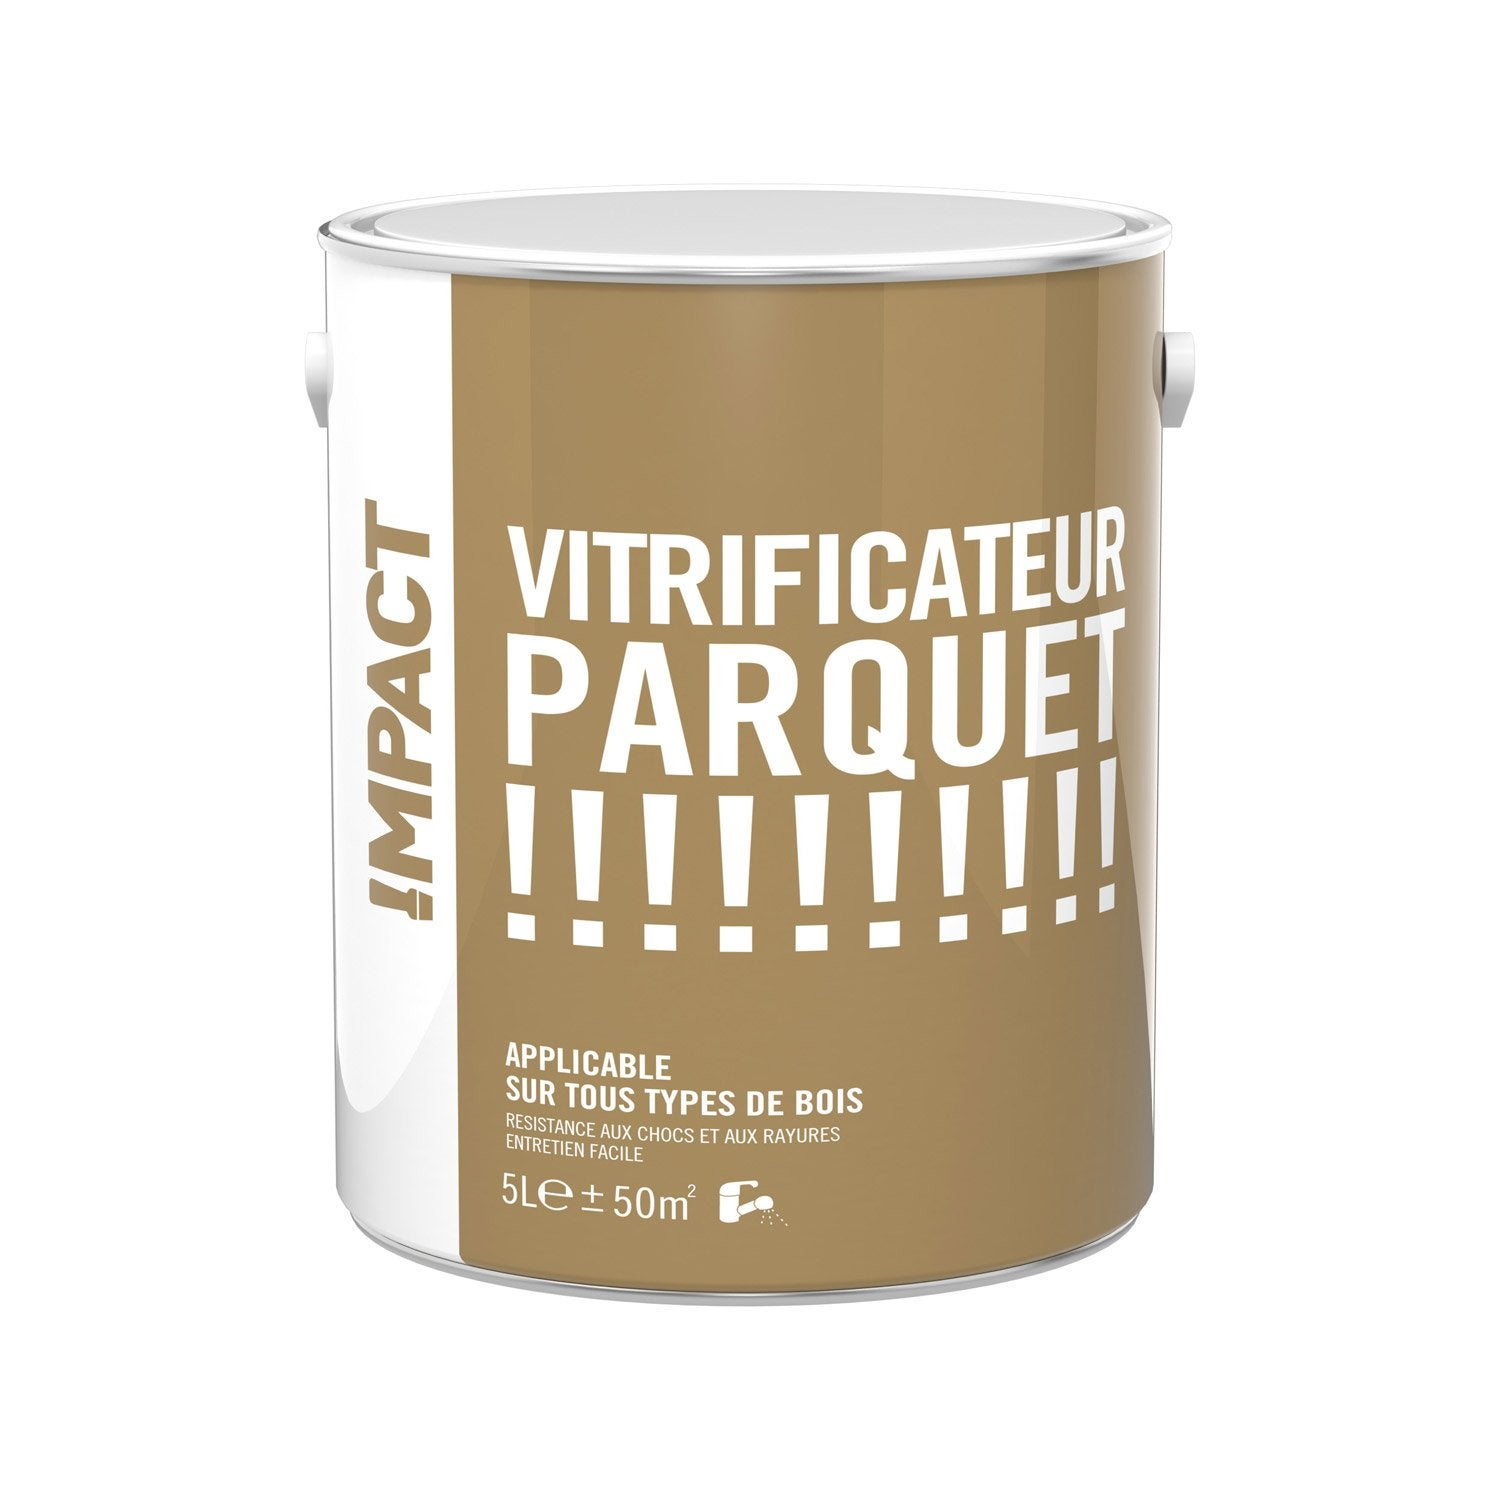 vitrificateur parquet impact incolore 5 l leroy merlin. Black Bedroom Furniture Sets. Home Design Ideas